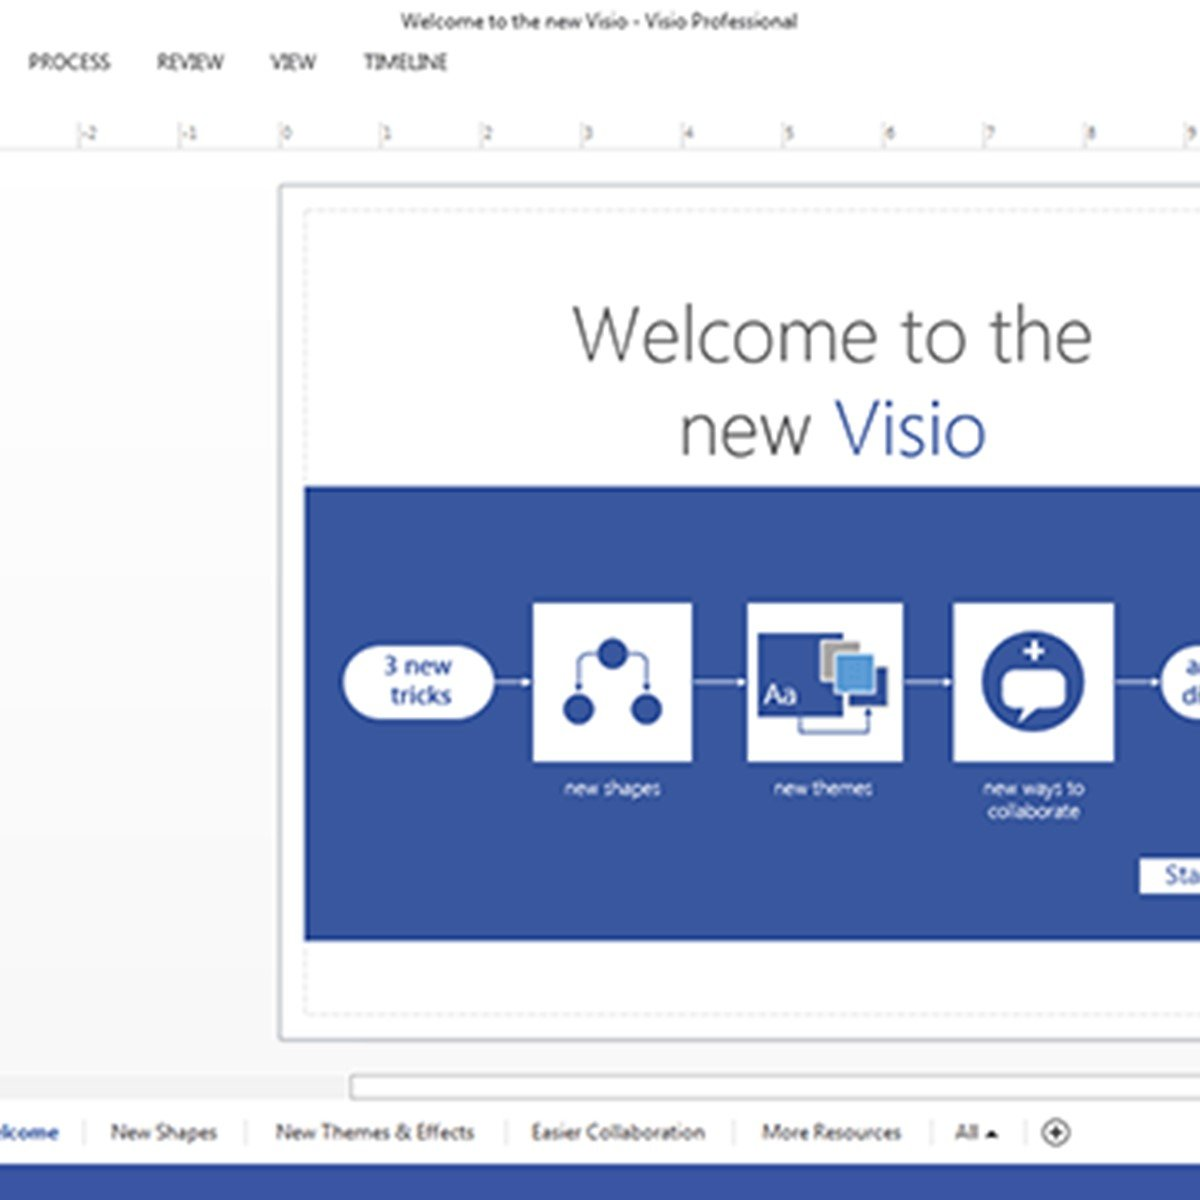 microsoft office visio alternatives for mac os x alternativetonet - Visio Like Program For Mac